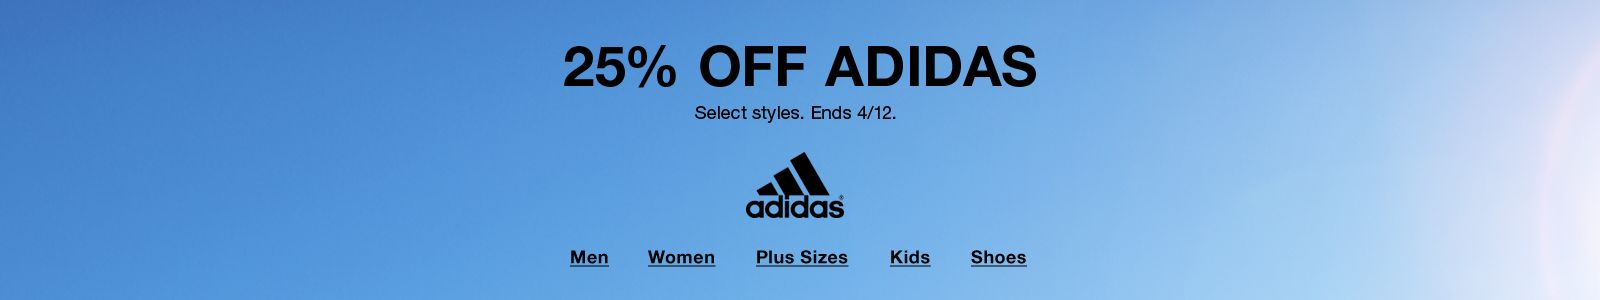 25% Off Adidas, Select styles, Ends 4/12, Men, Women, Plus Sizes, Kids, Shoes